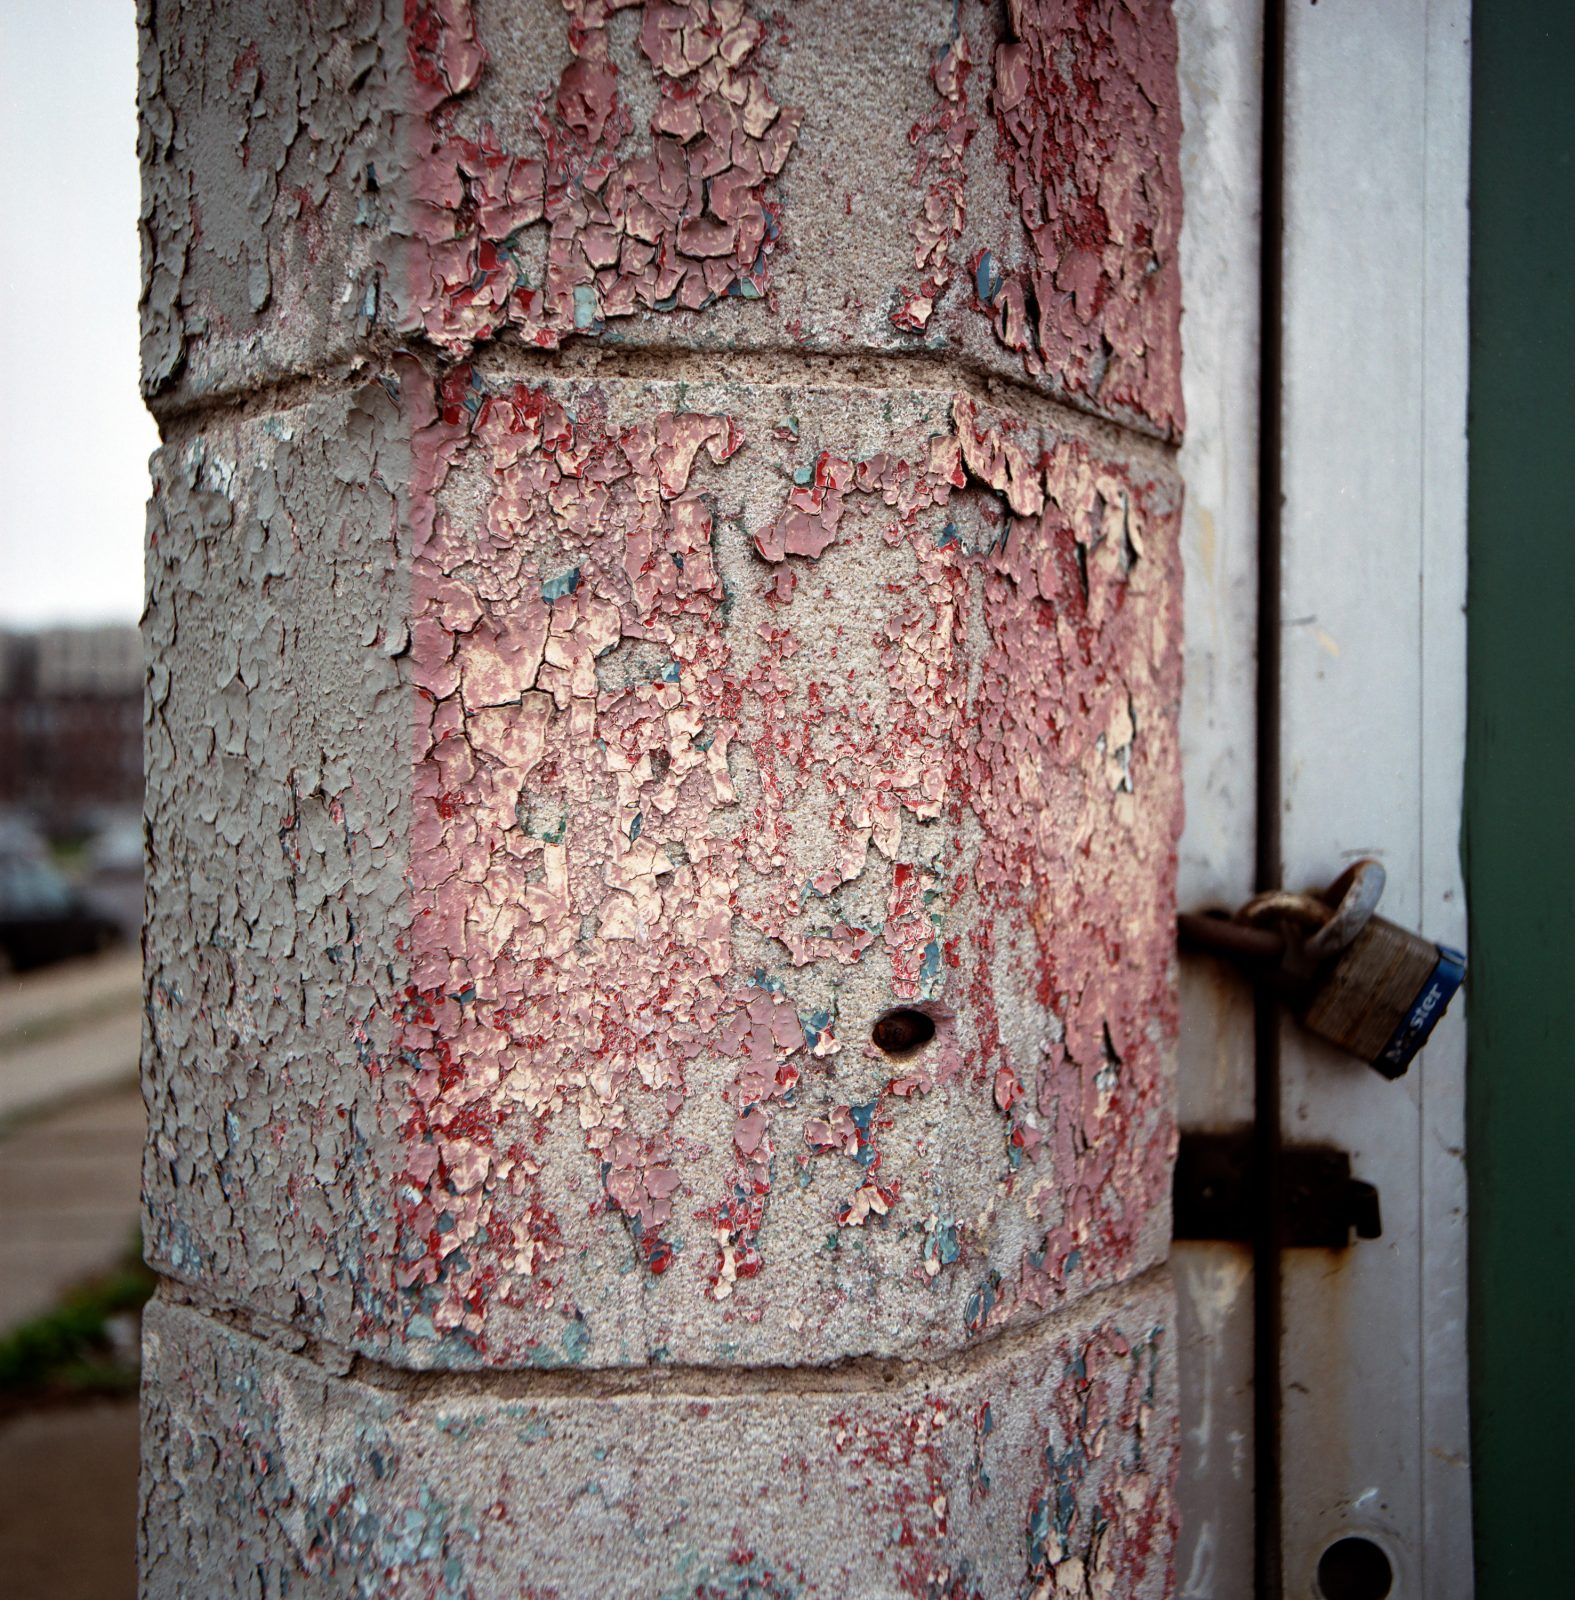 Peeling paint. Detroit, Michigan.